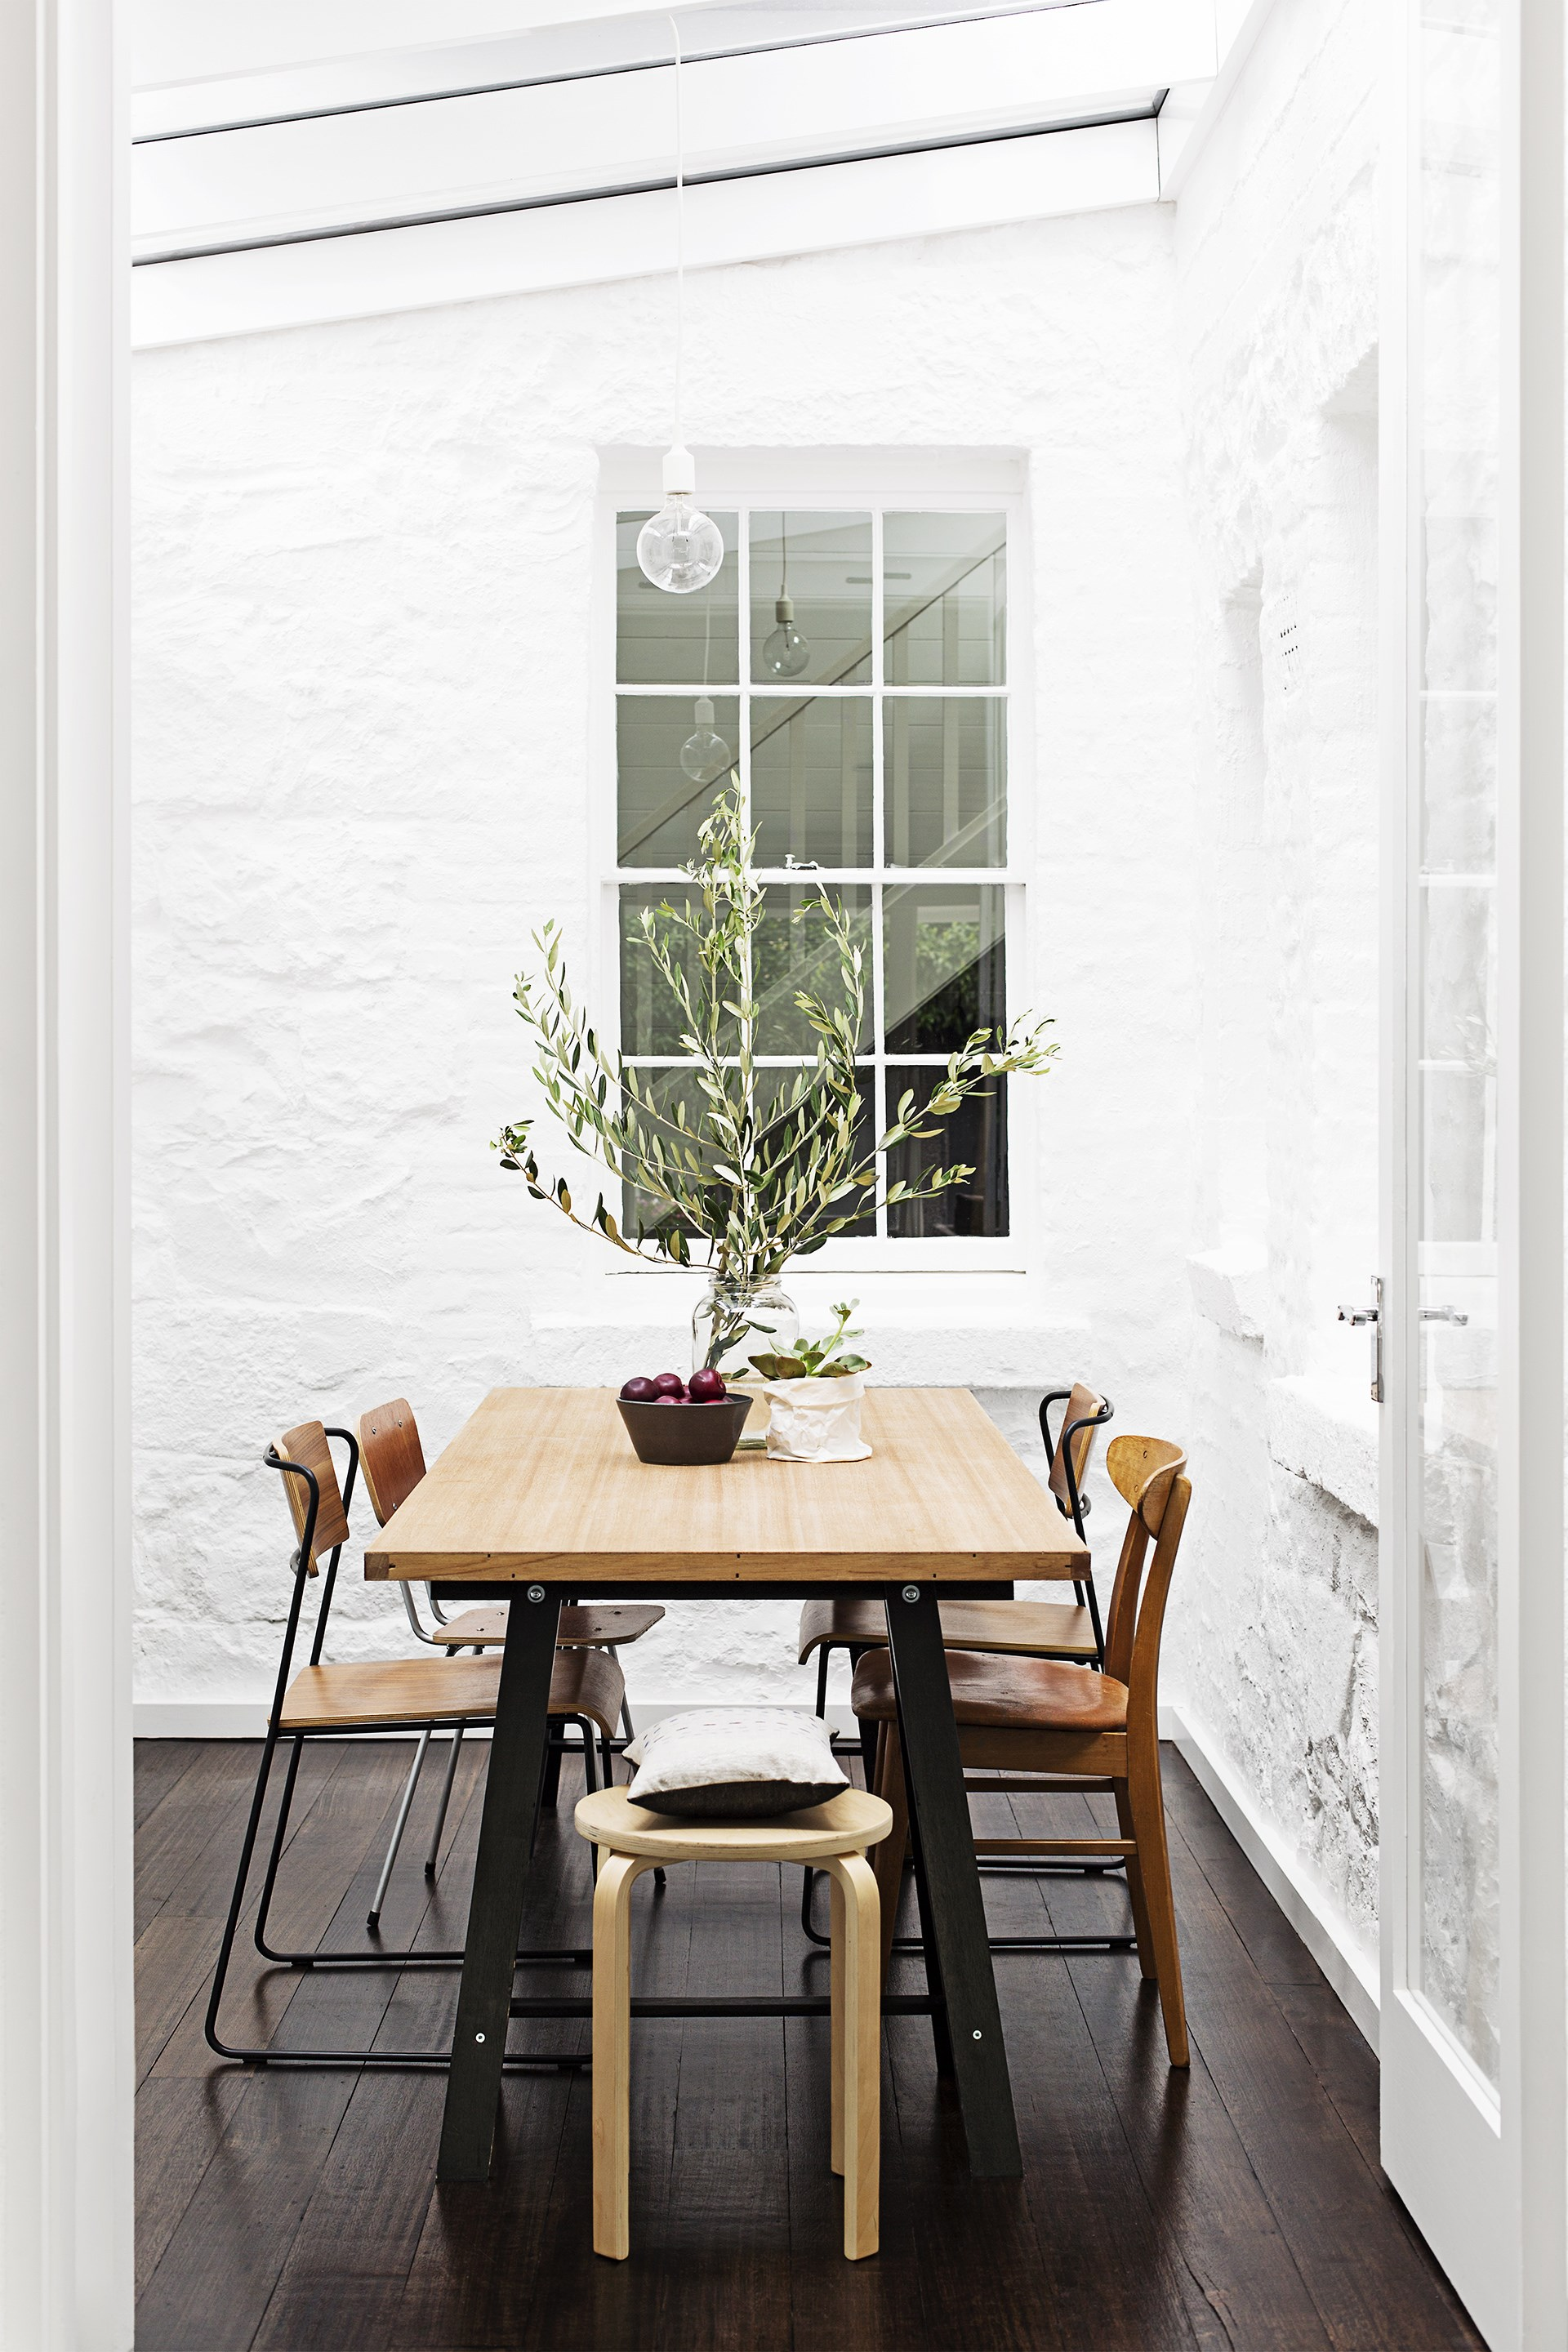 """When the long winters end, and spring arrives, homes are turned over. The base pieces – like timber tables and leather ottomans – are kept, while cushions and rugs are swapped over for lighter materials and entertaining moves outdoors.   See more of this [light-filled Melbourne terrace](http://www.homestolove.com.au/georgias-light-filled-melbourne-terrace-2245